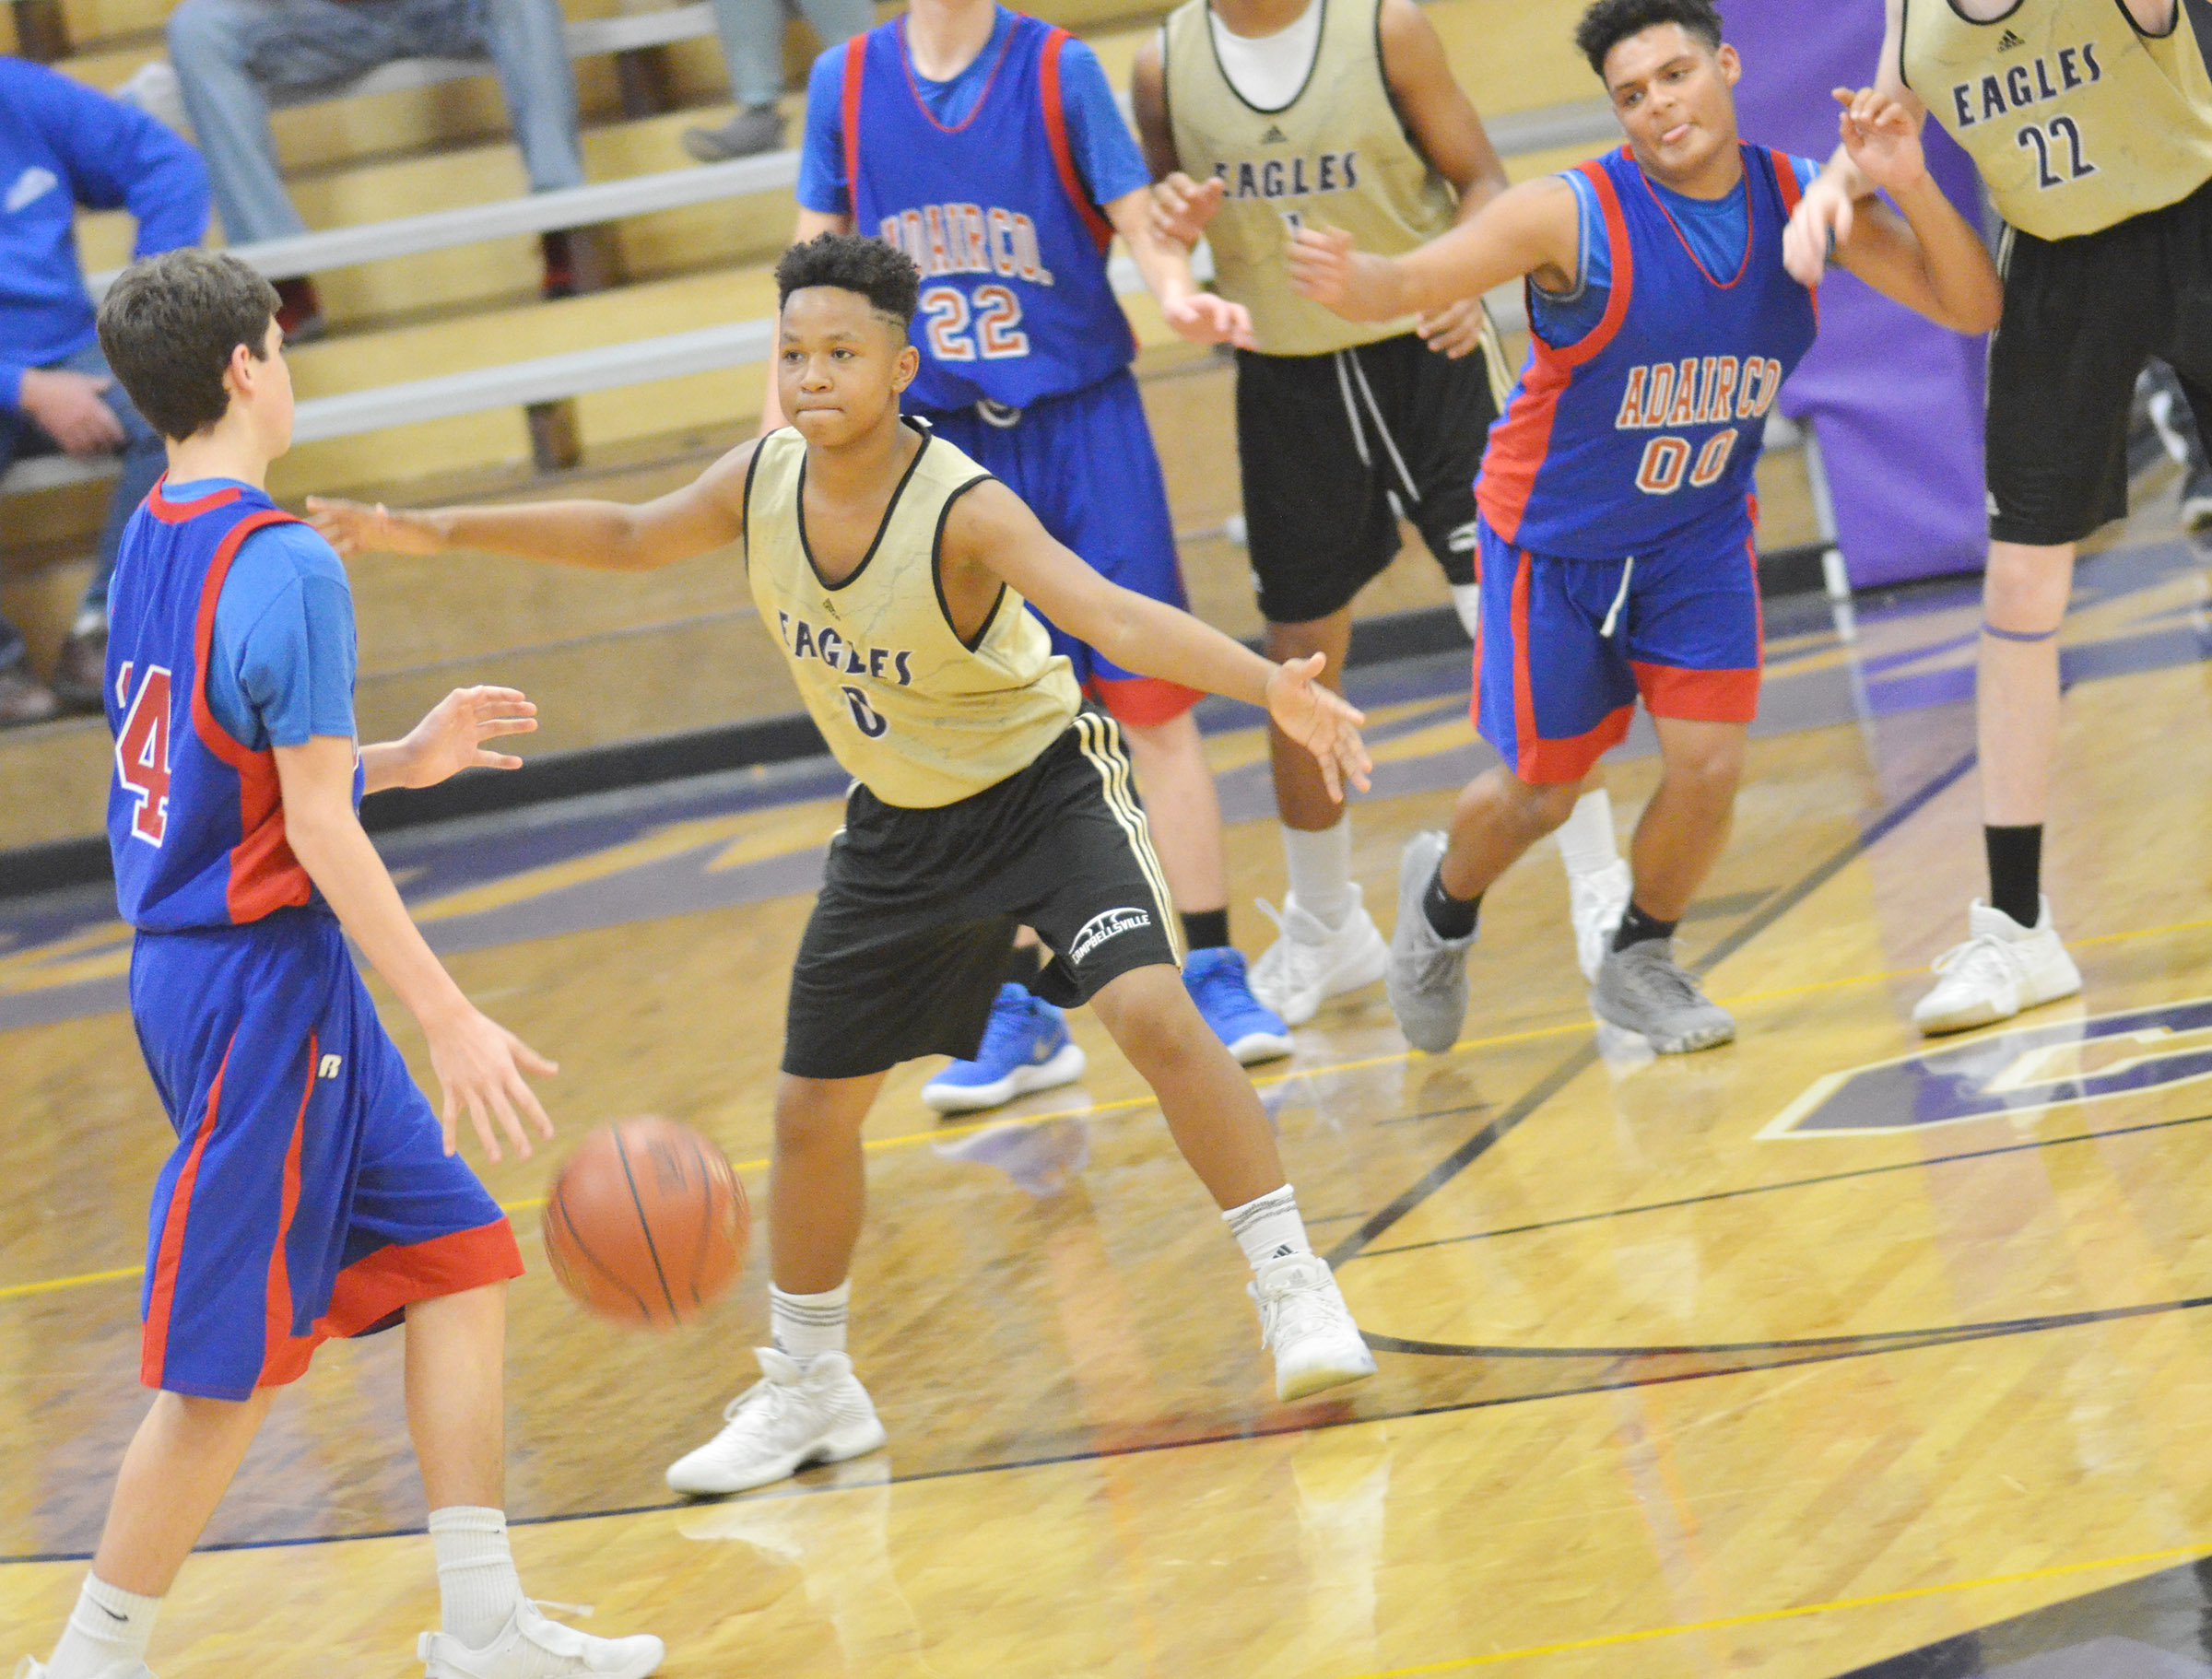 Campbellsville Middle School seventh-grader Deondre Weathers plays defense.